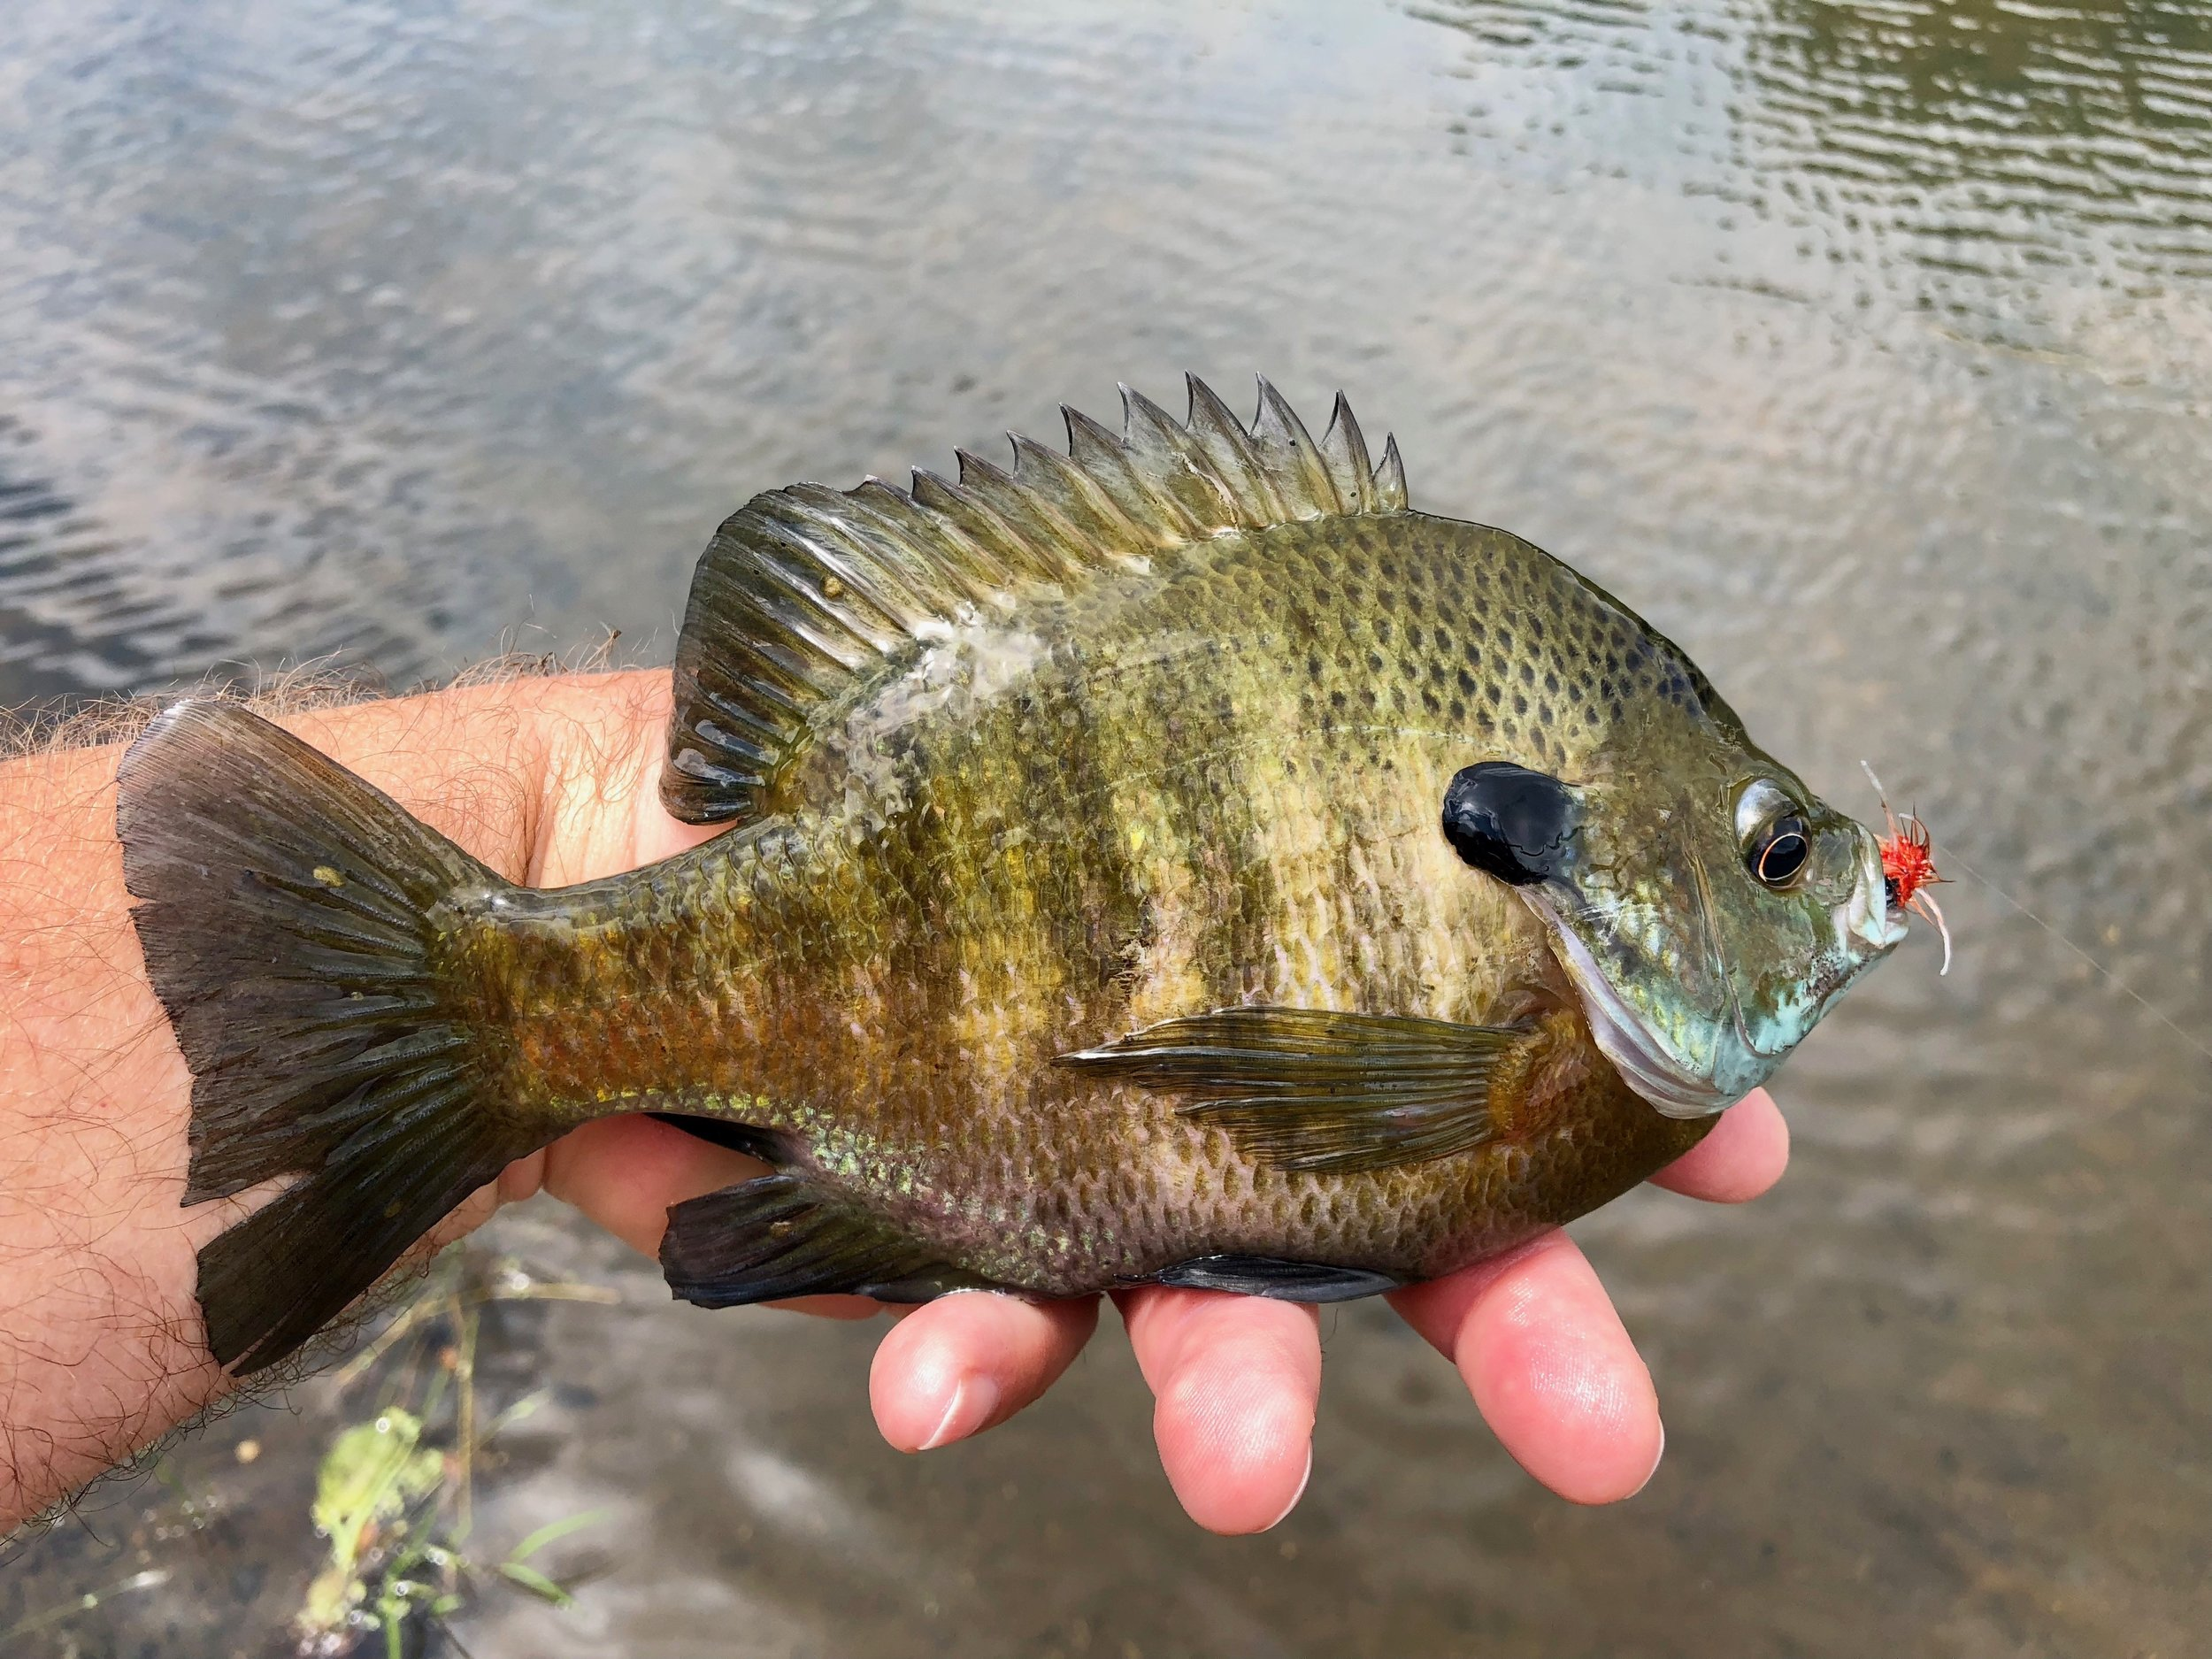 Larger panfish have no problem taking this large nymph pattern. The larger size will keep the runts at bay.